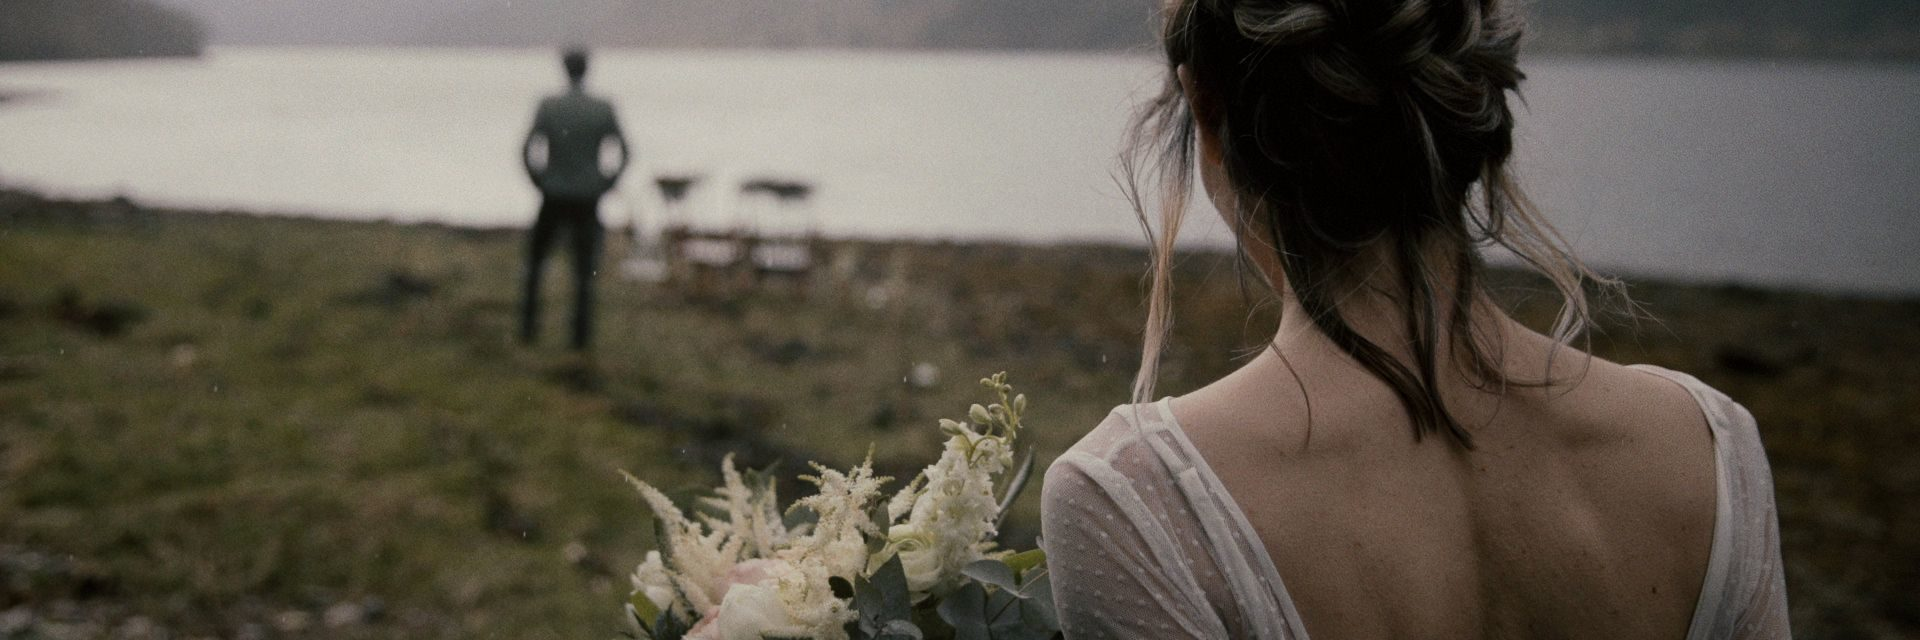 Lofoten-wedding-videographer-cinemate-films-02